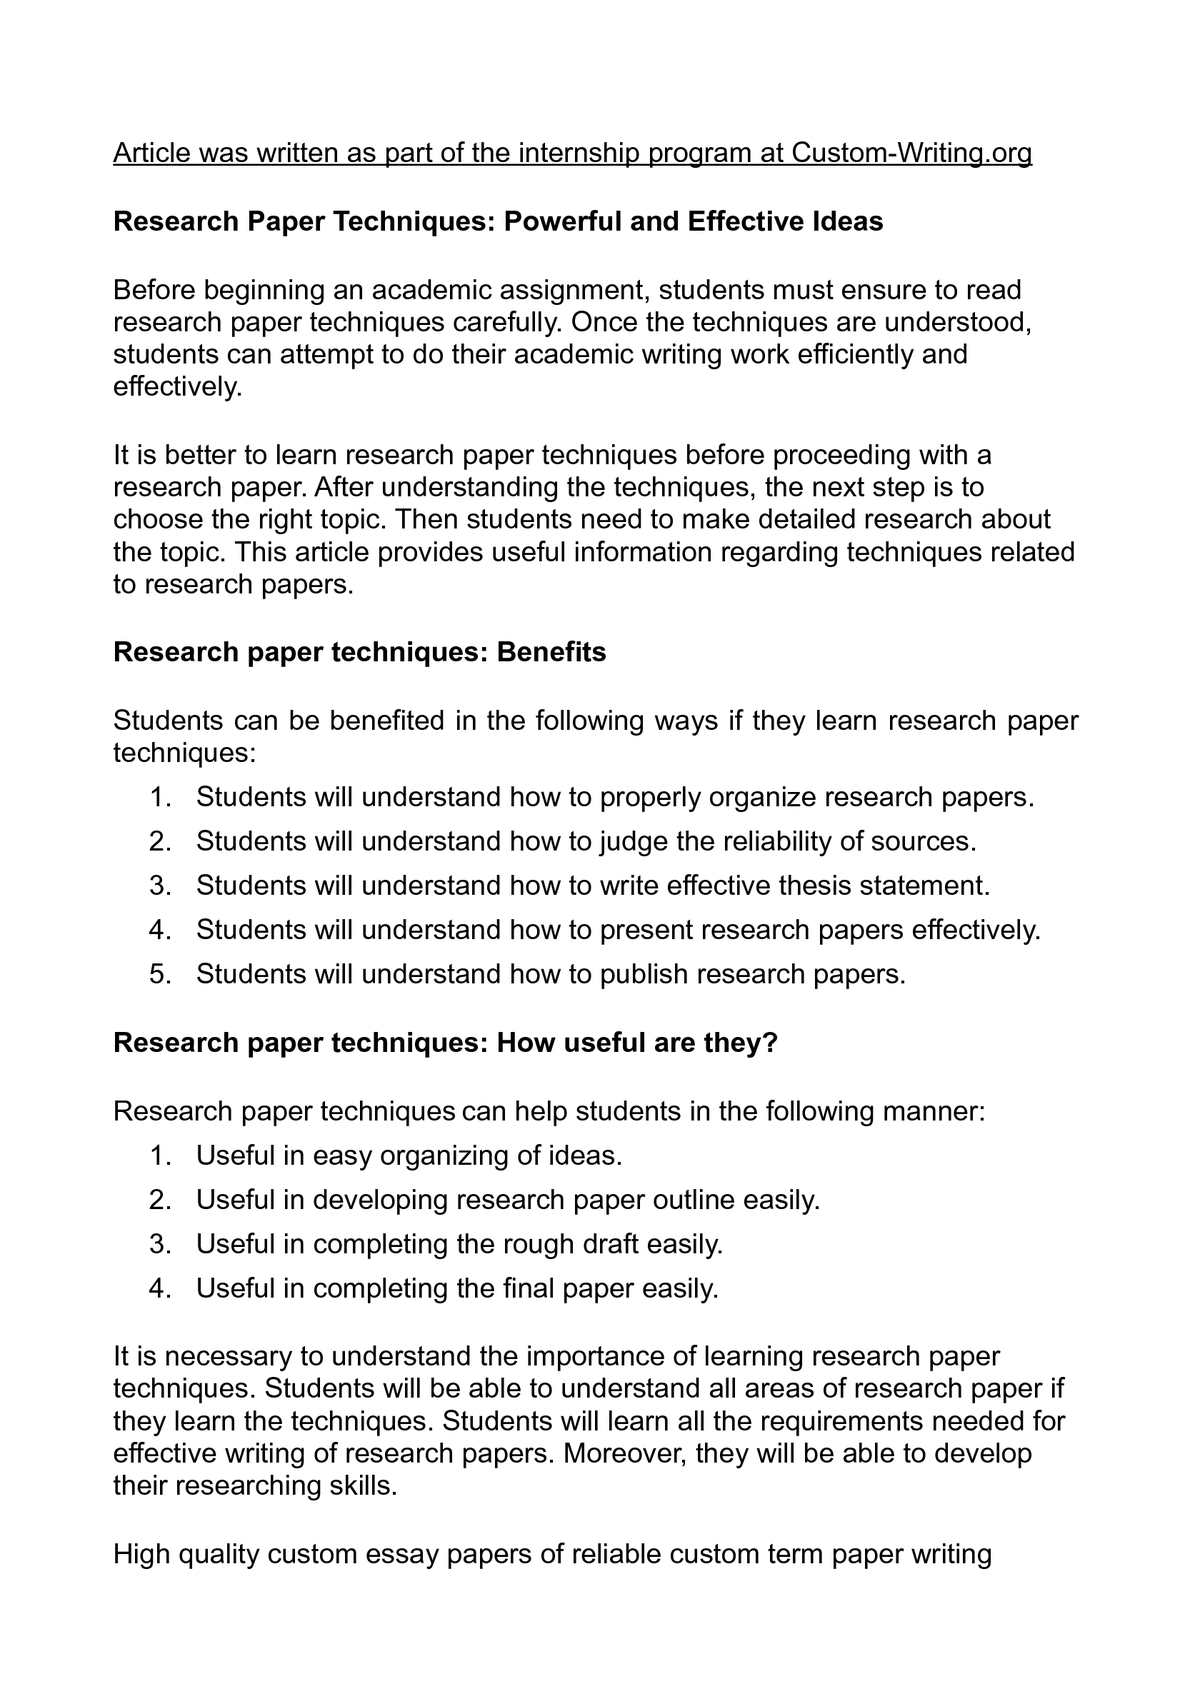 003 Ideas For Research Paper Fascinating Papers In Computer Science Middle School Full